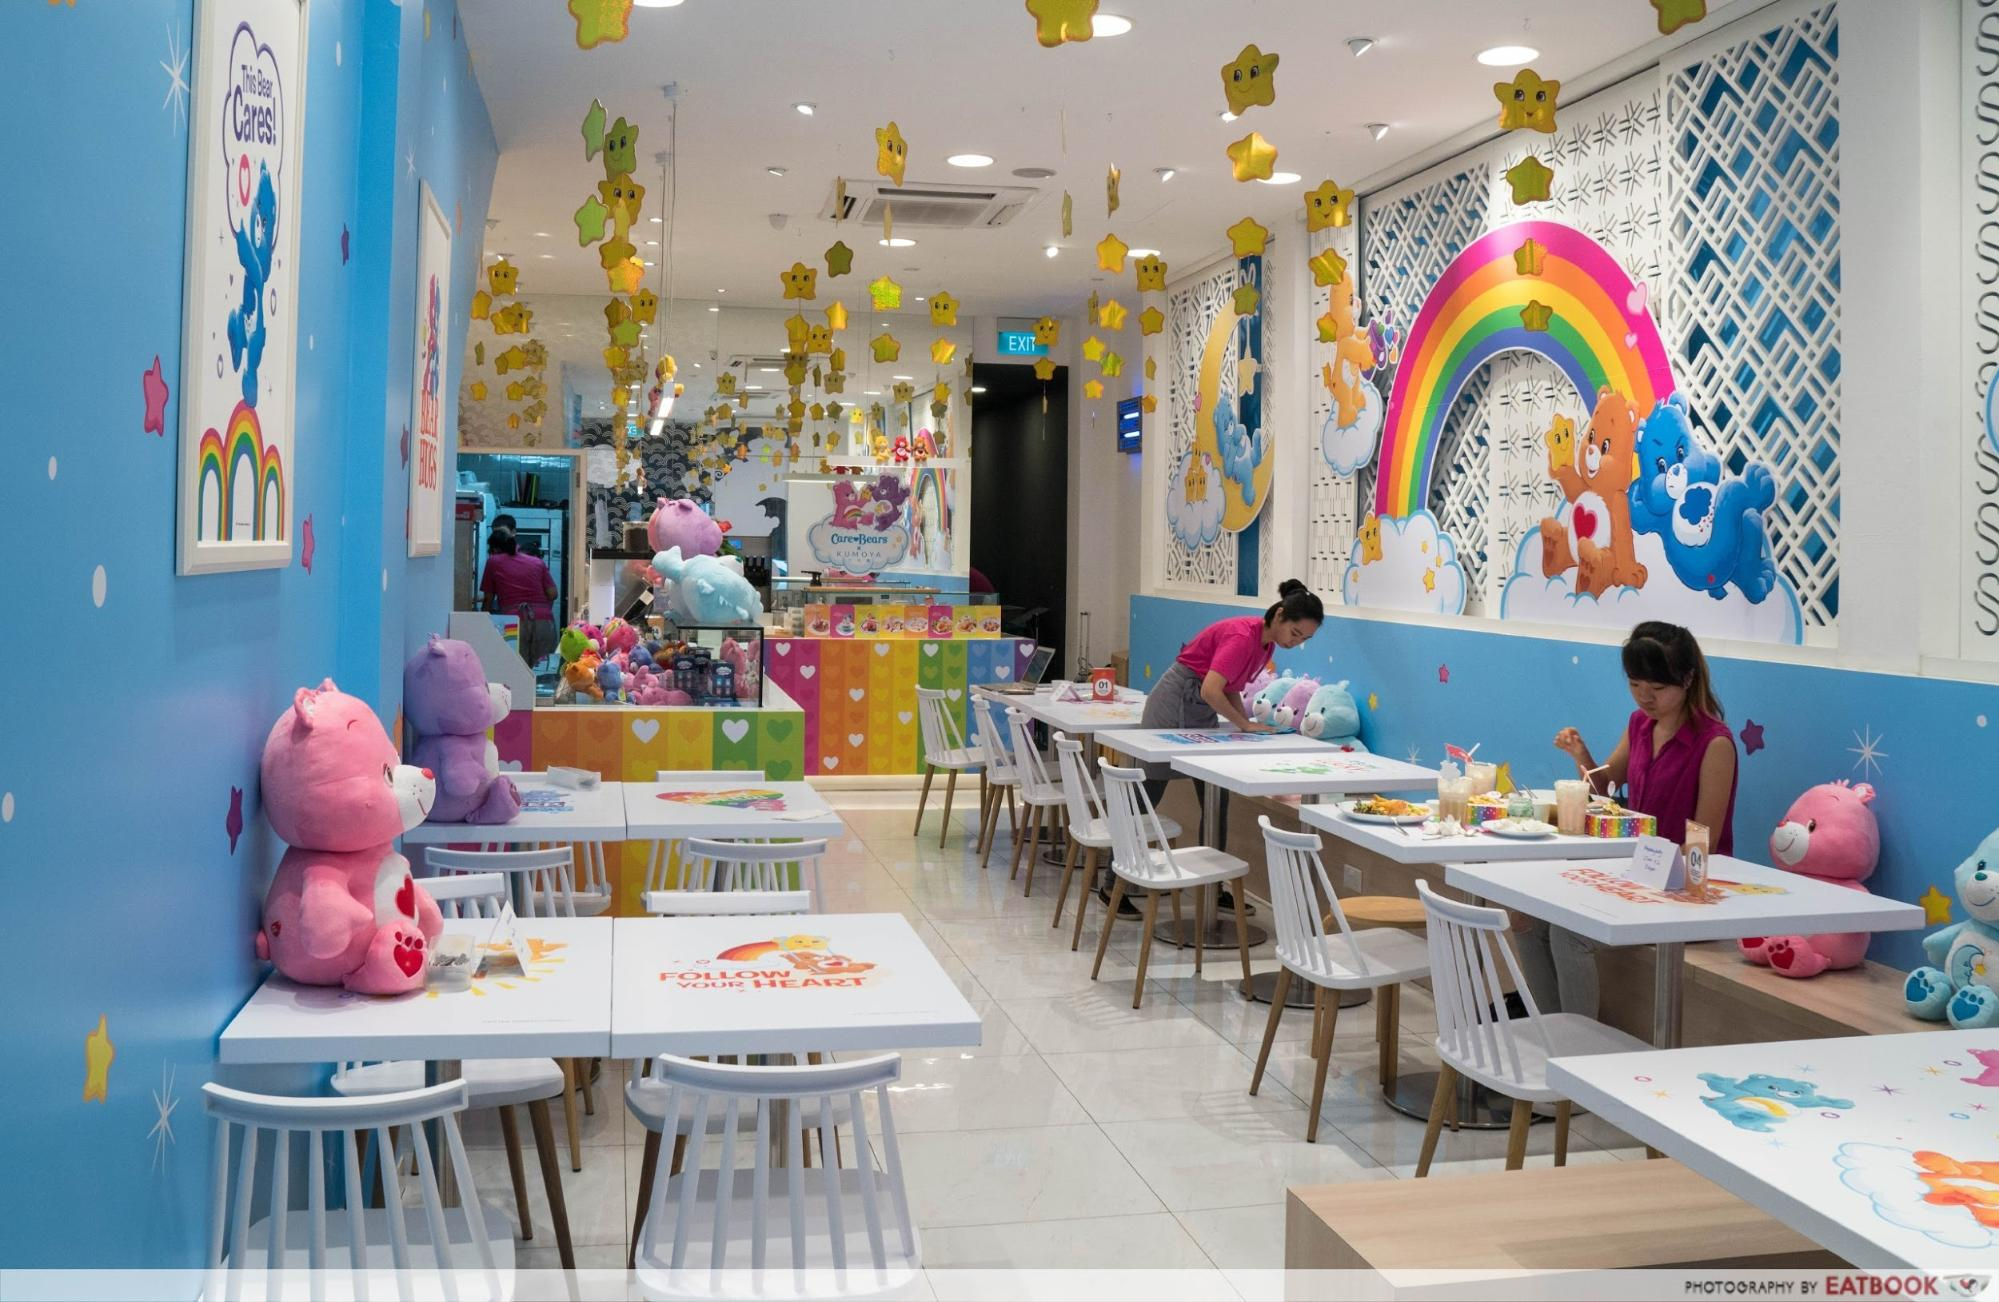 Feb 2018 cafes and restaurants (4) - Care Bears Cafe interior